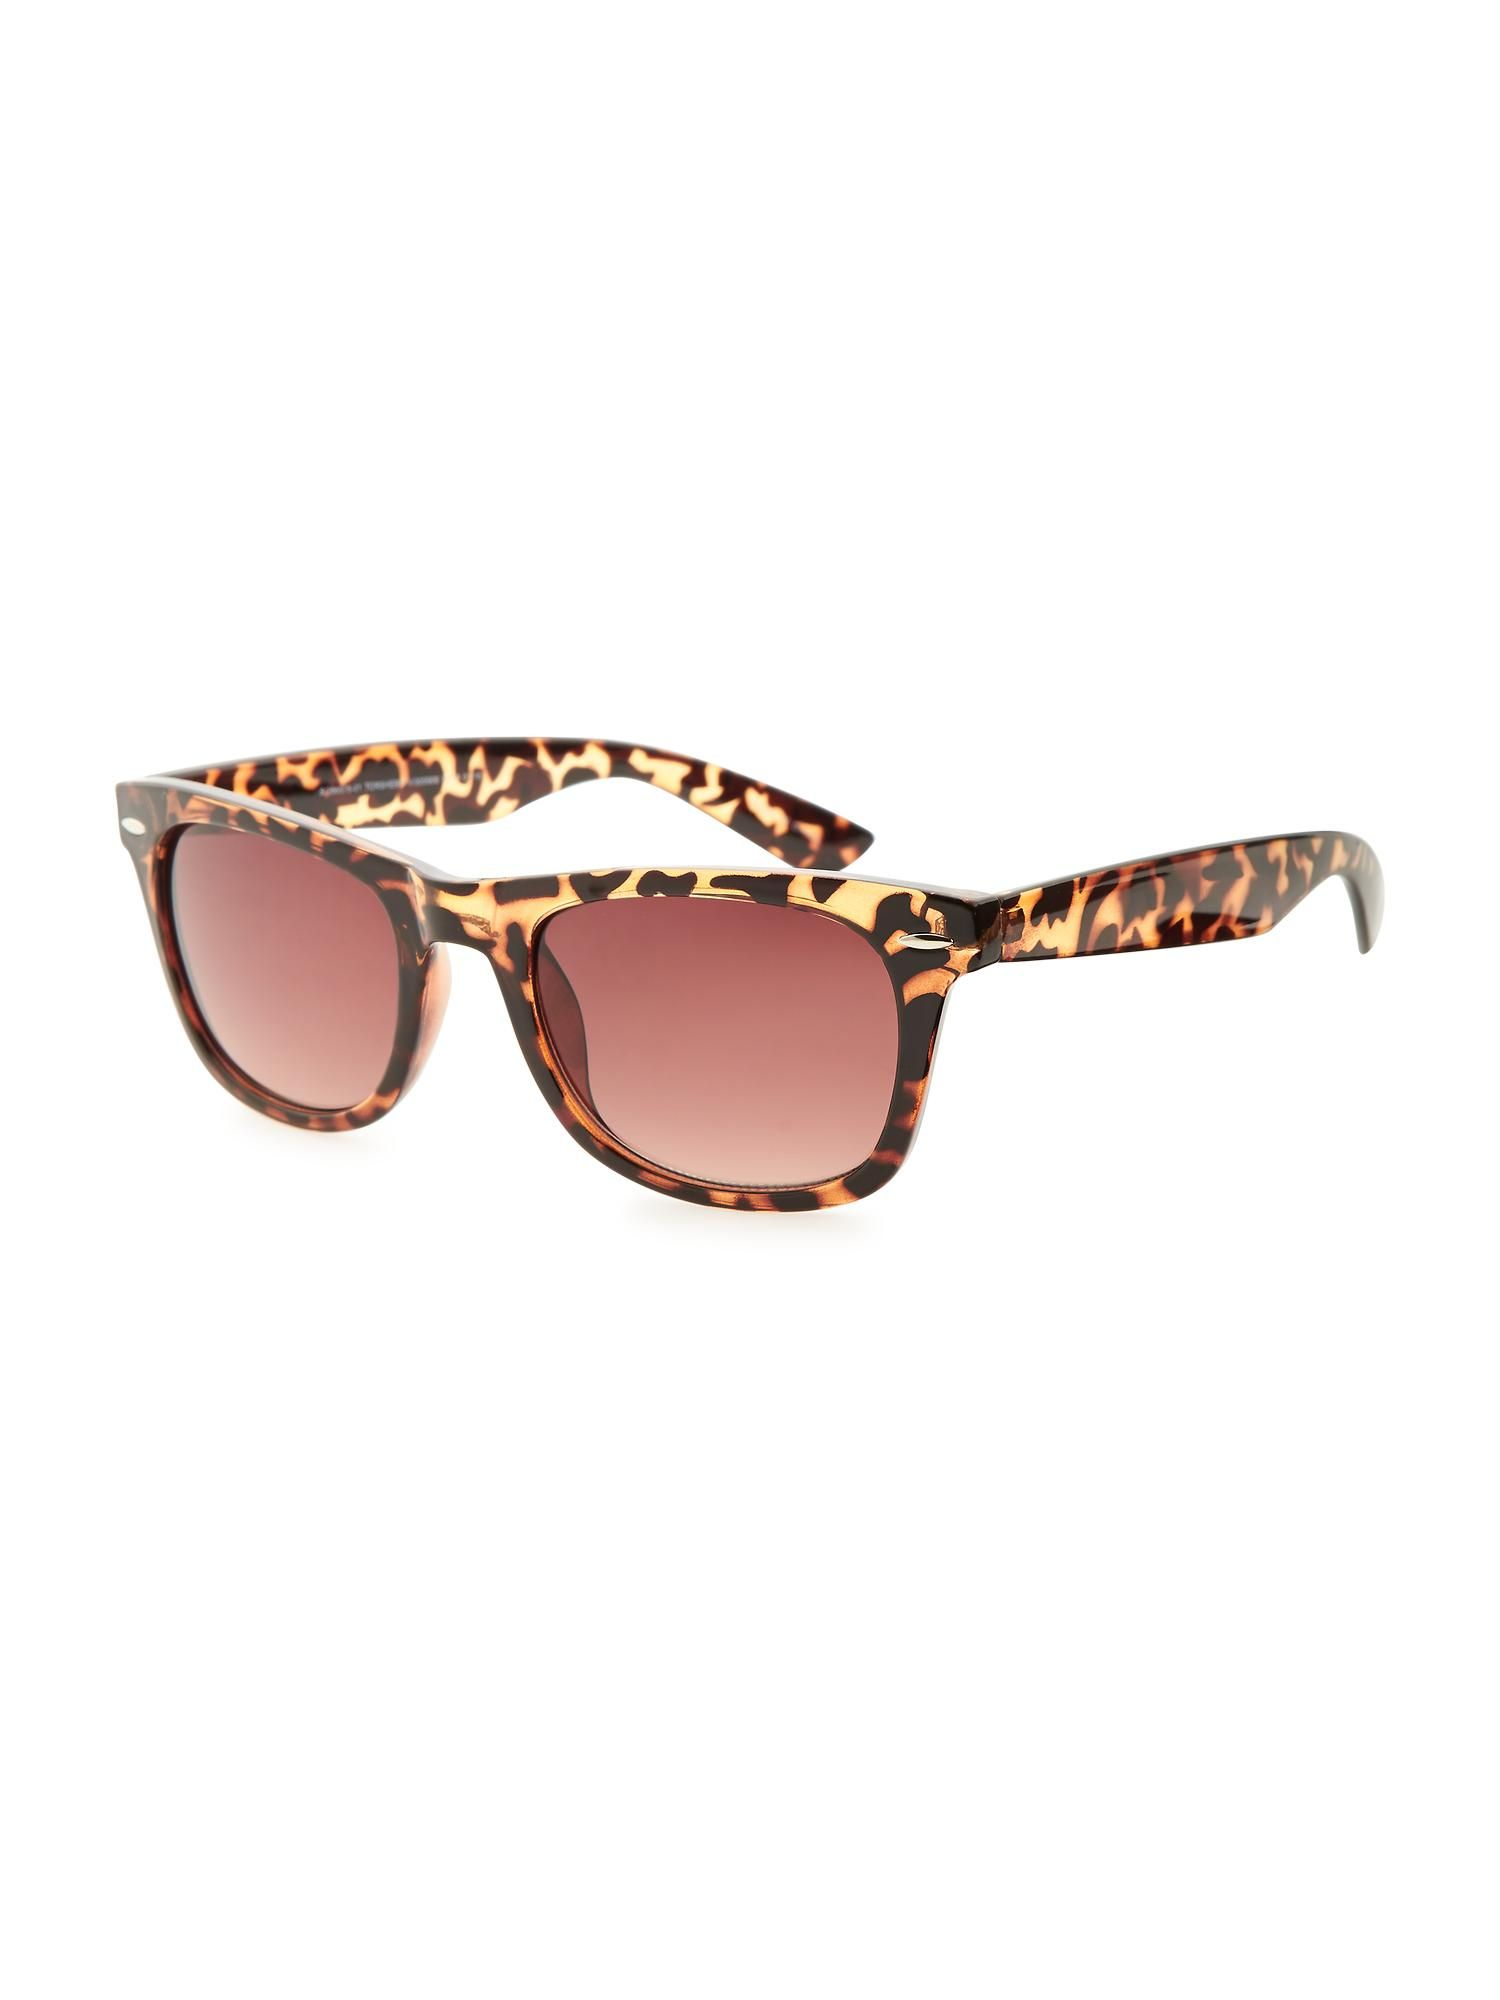 0b3da45b752d Old Navy - Classic Retro Sunglasses (Tortoise Shell) | Shanny from ...